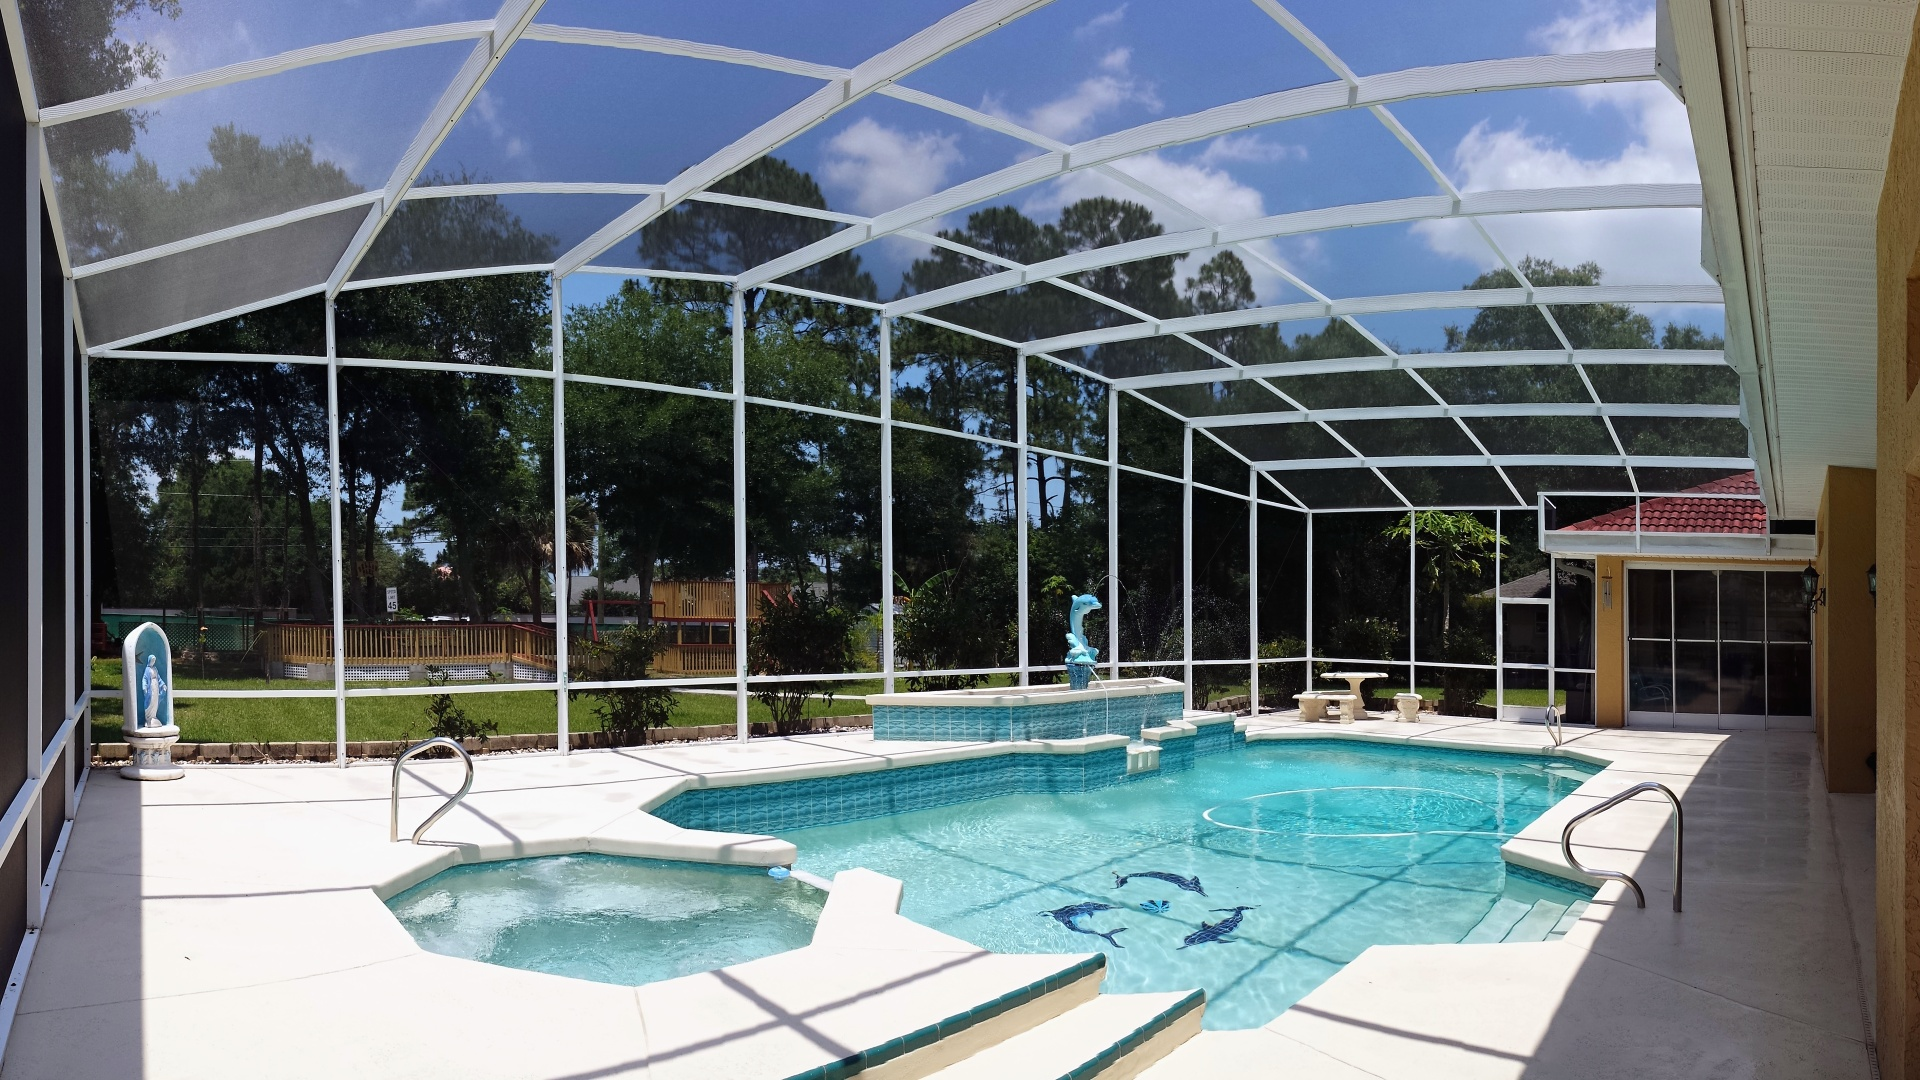 pool-screen-repair-port-orange-08-1080p.jpg